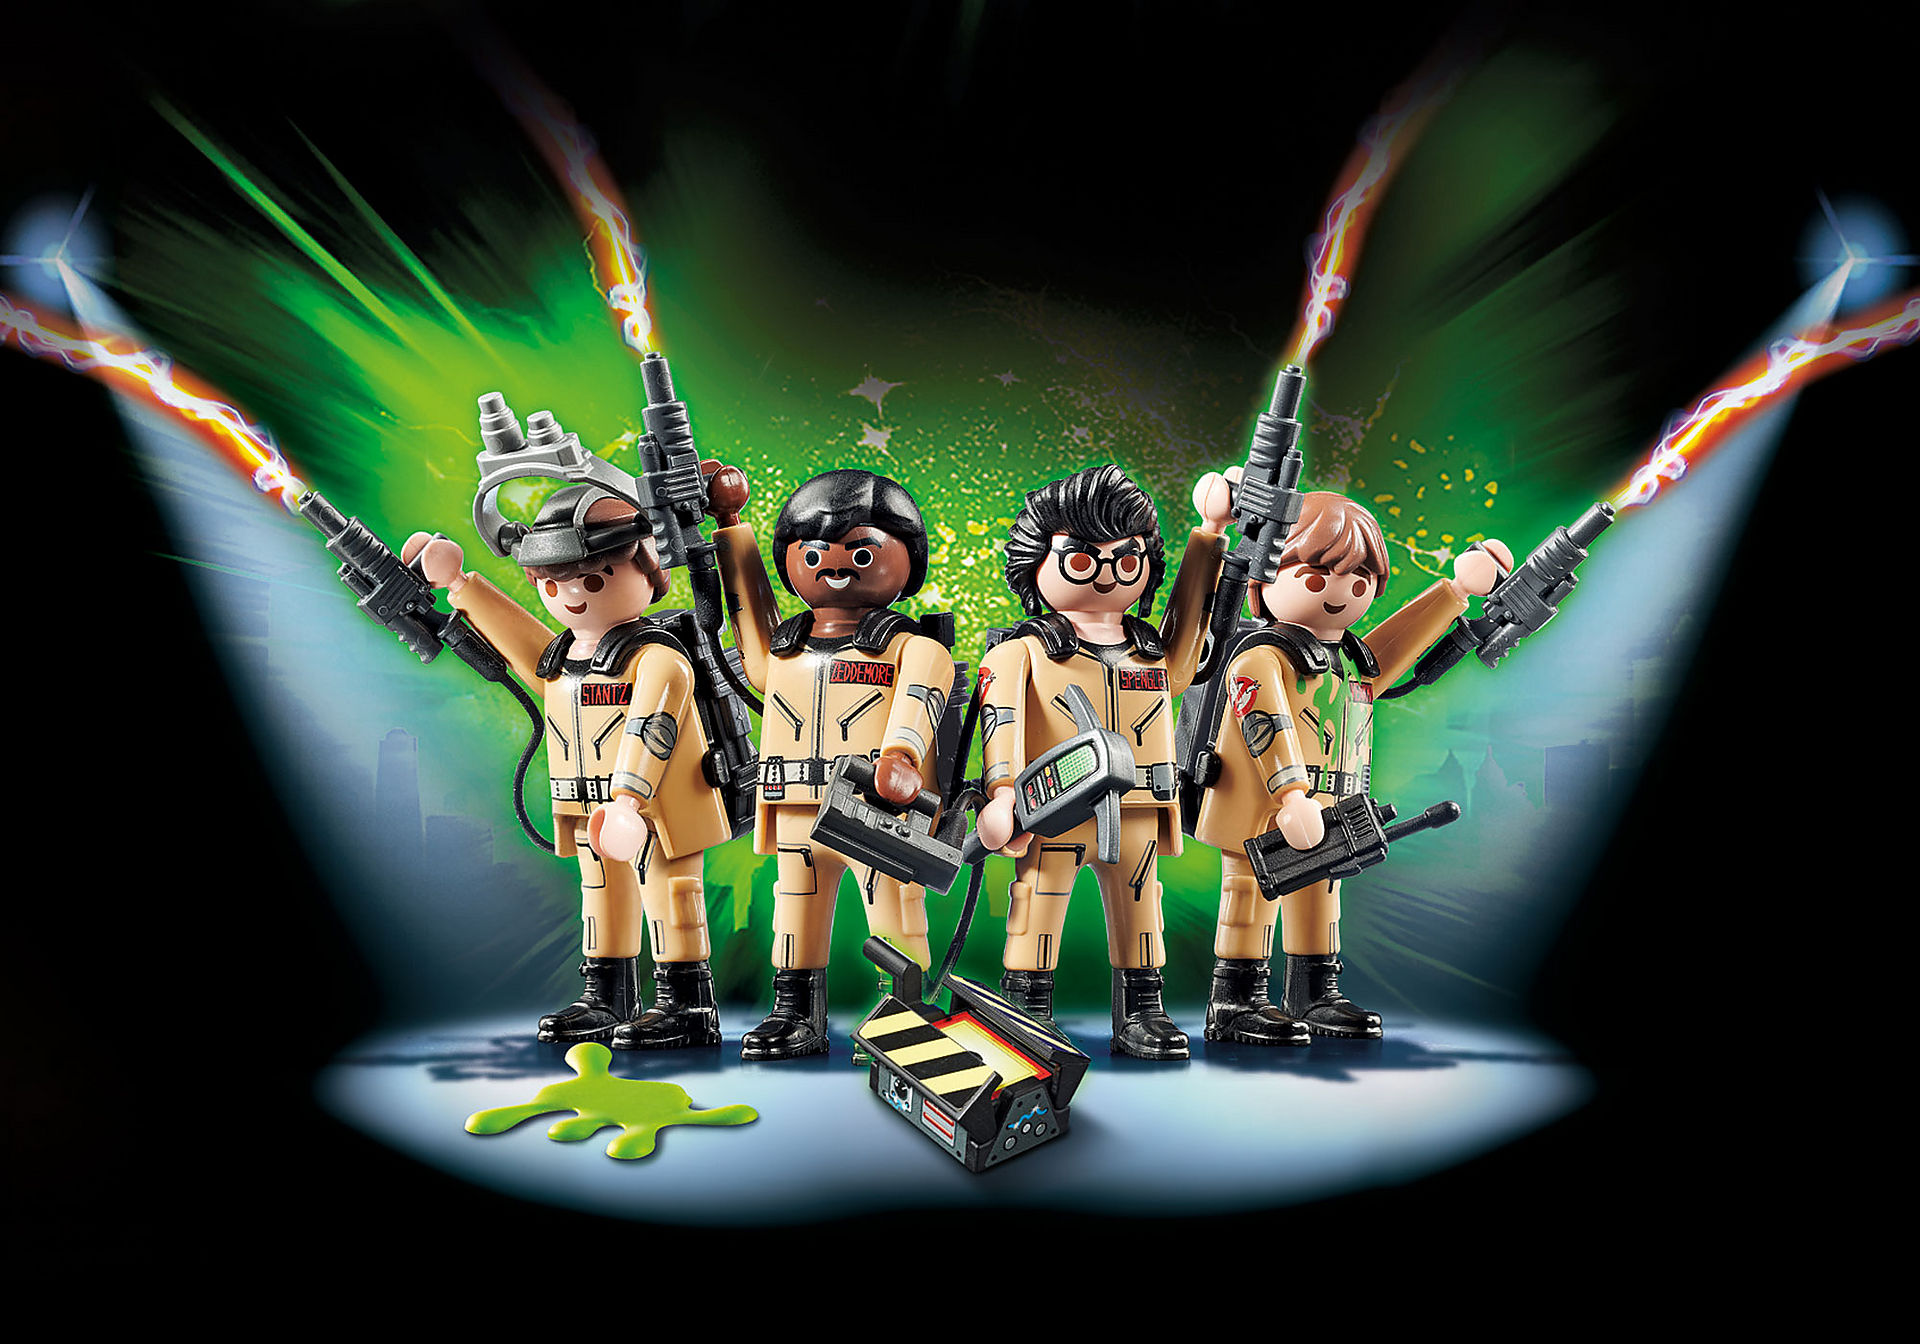 70175 Ghostbusters Collector's Set Ghostbusters zoom image1